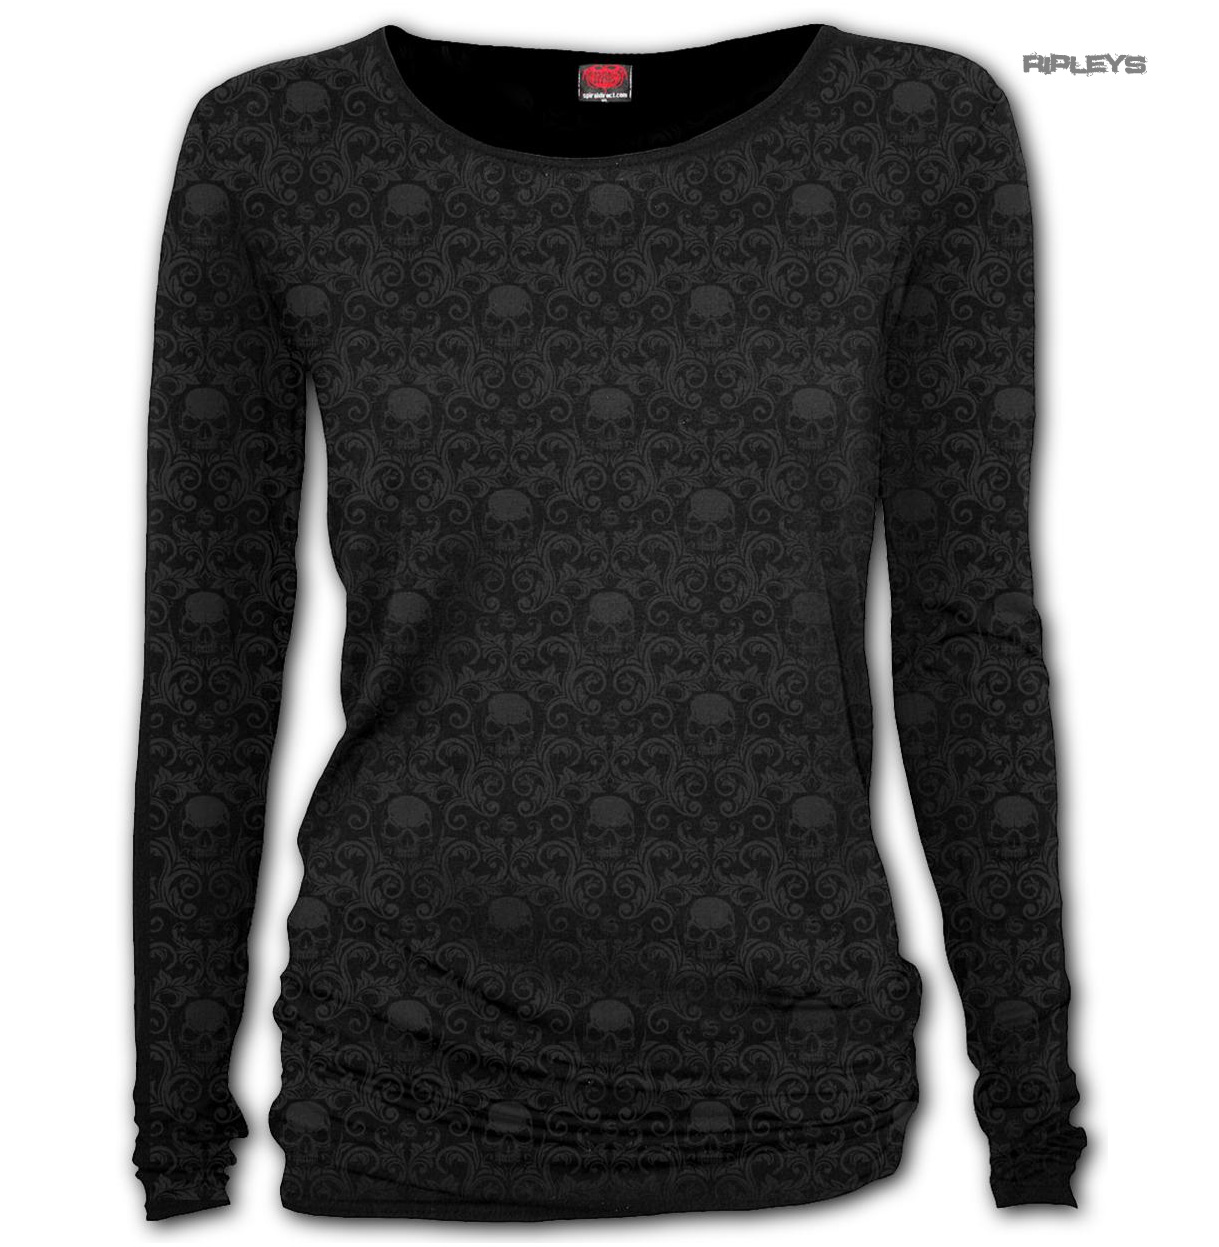 Spiral-Gothic-Elegance-Ladies-Blk-Goth-Scroll-IMPRESSION-L-Sleeve-Top-All-Sizes thumbnail 4